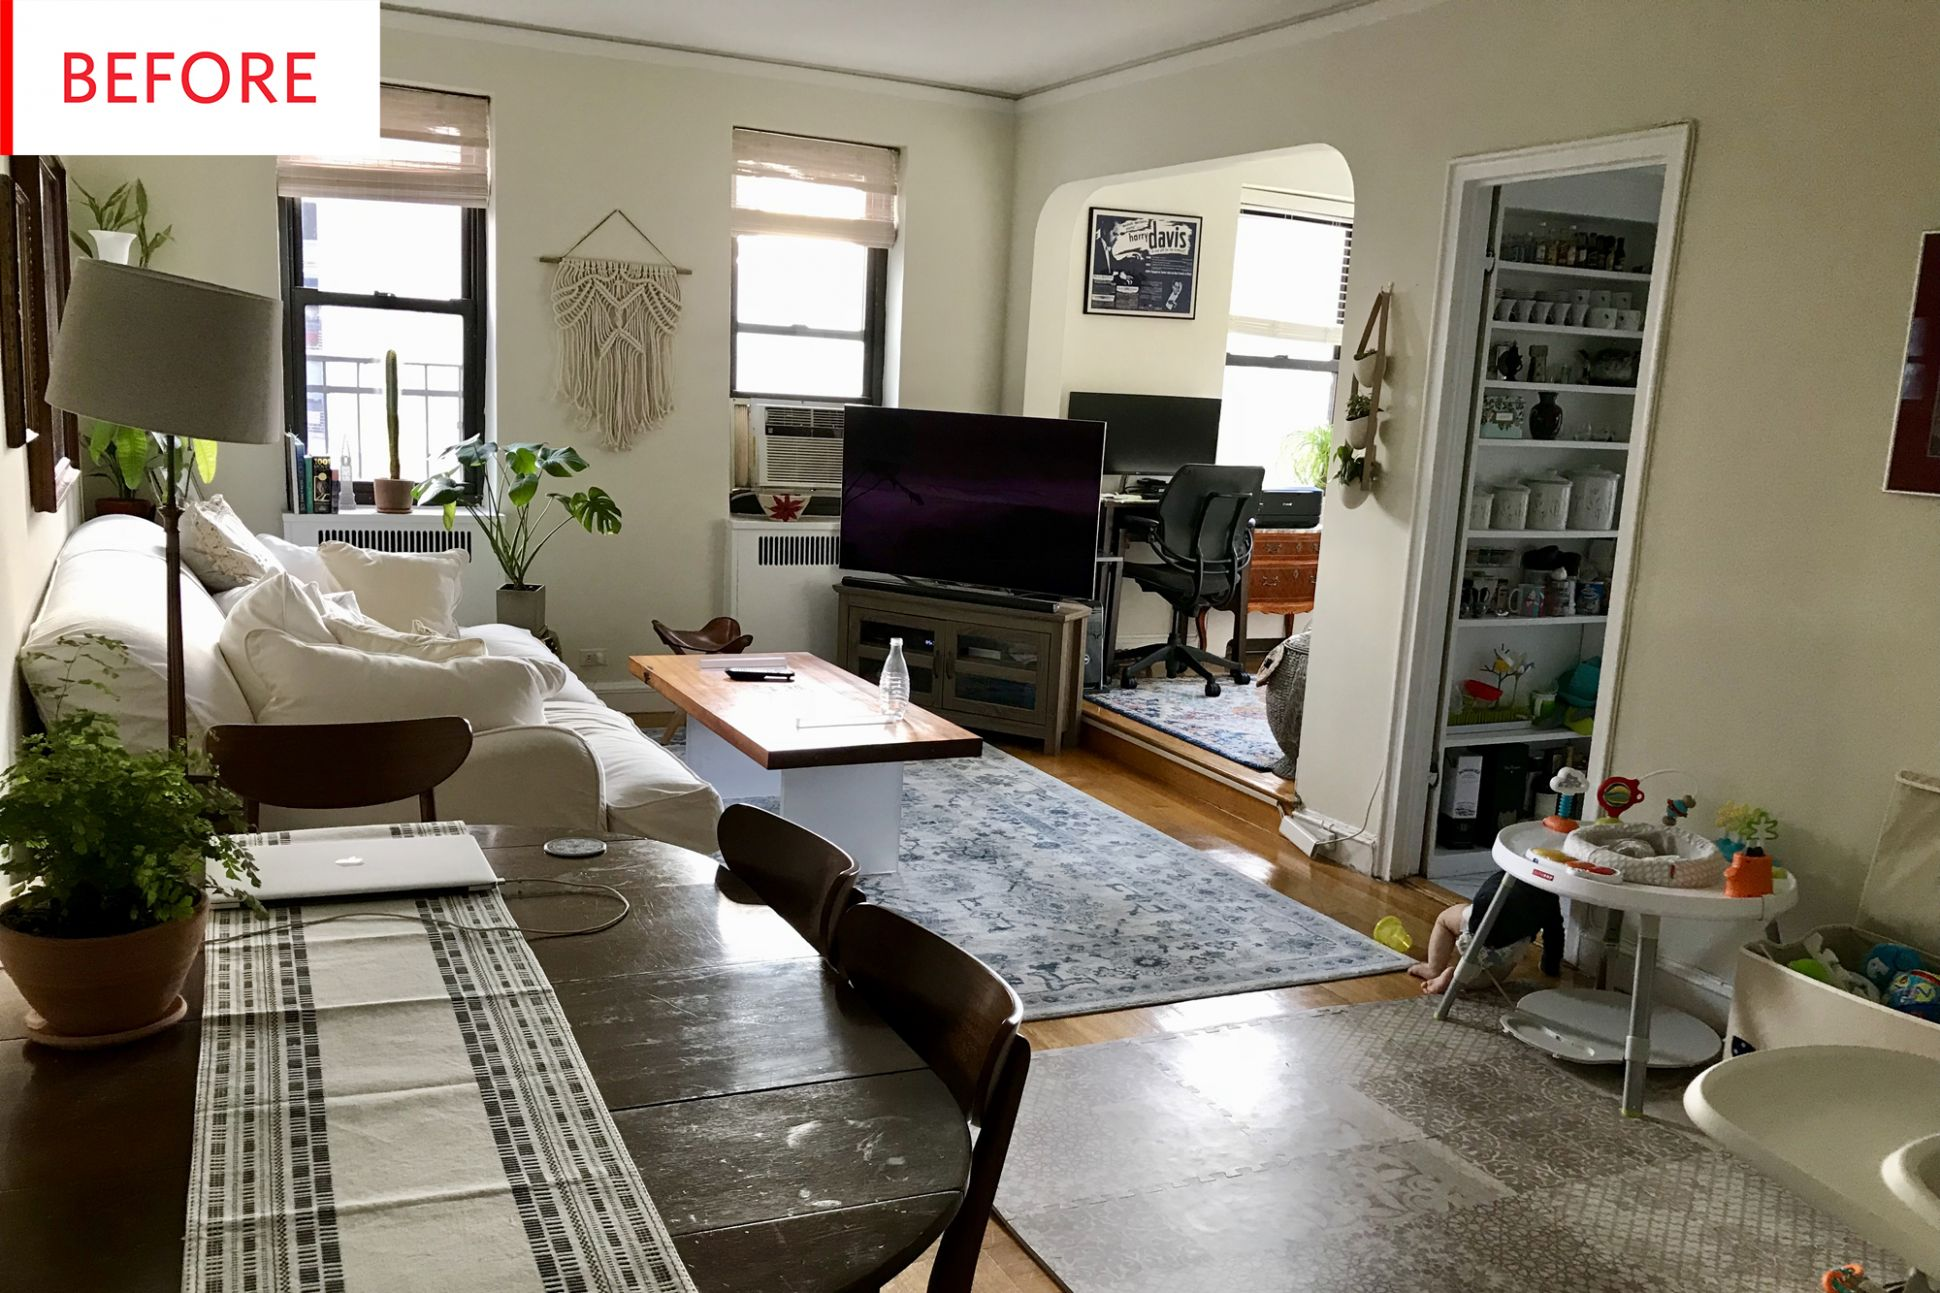 Furniture Rearranging Ideas for Small Apartment Living | Apartment ...